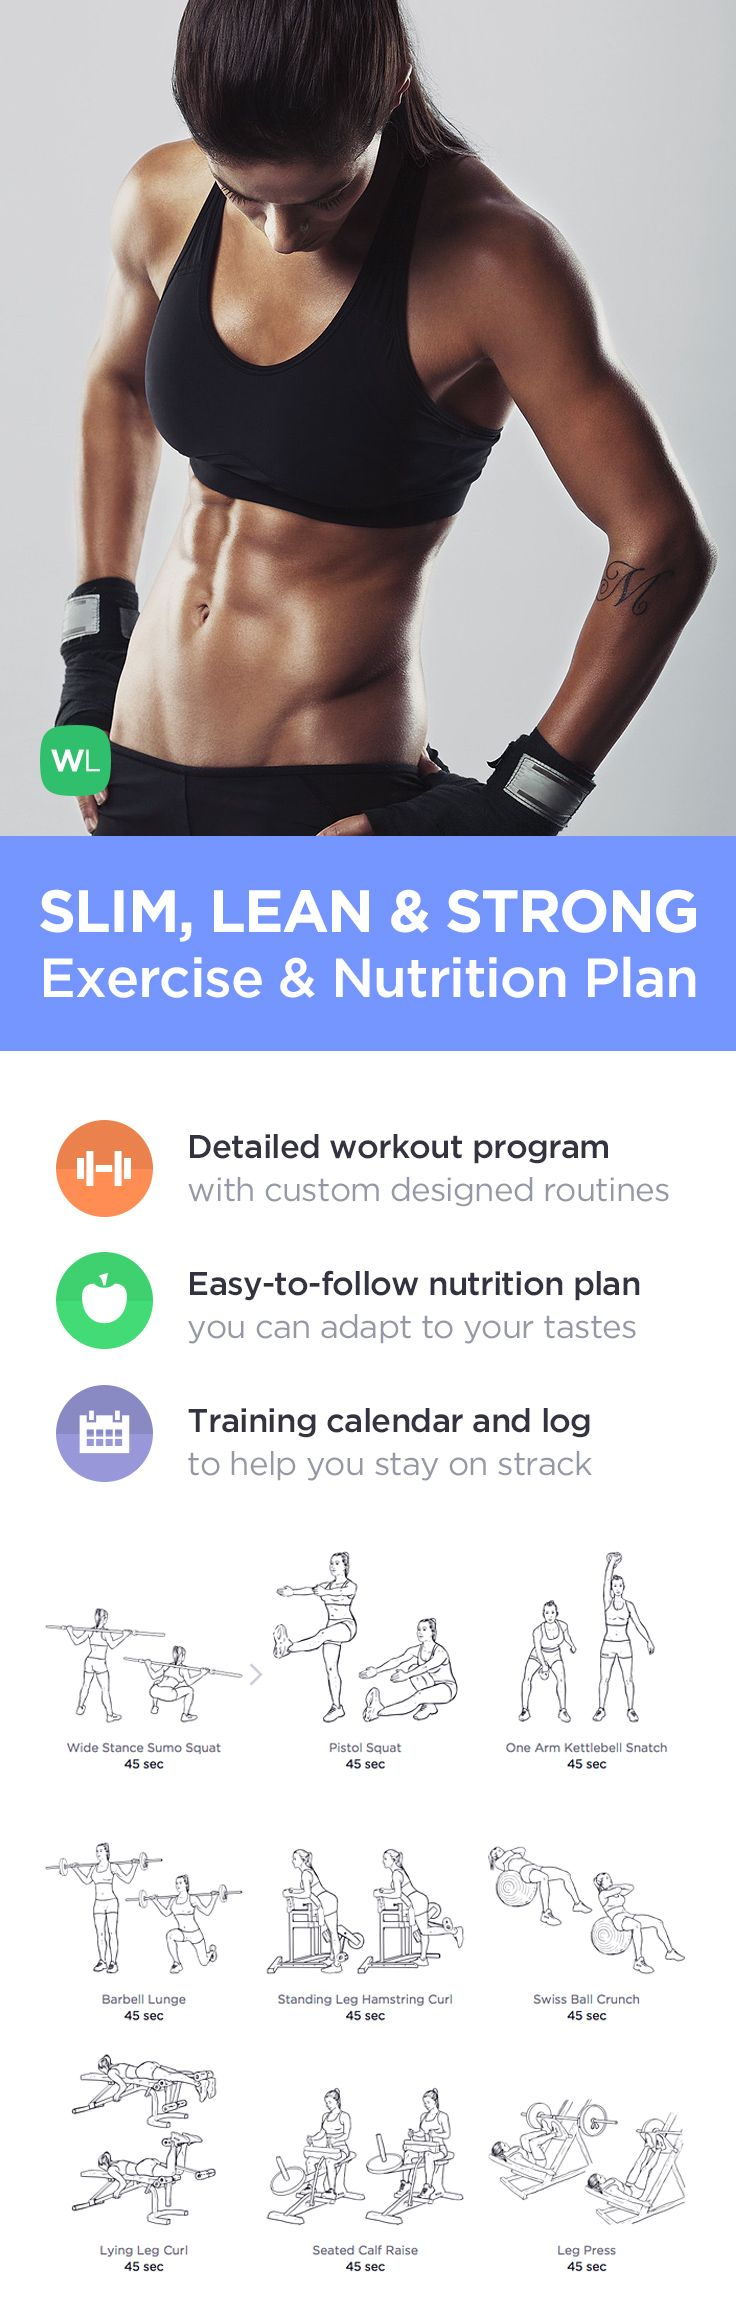 Shed extra pounds and tone your whole body in just weeks with illustrated 20-minute HIIT gym workouts, training advice and a simple nutrition guide you will enjoy following. Visit http://WLabs.me/SlimLeanStrong